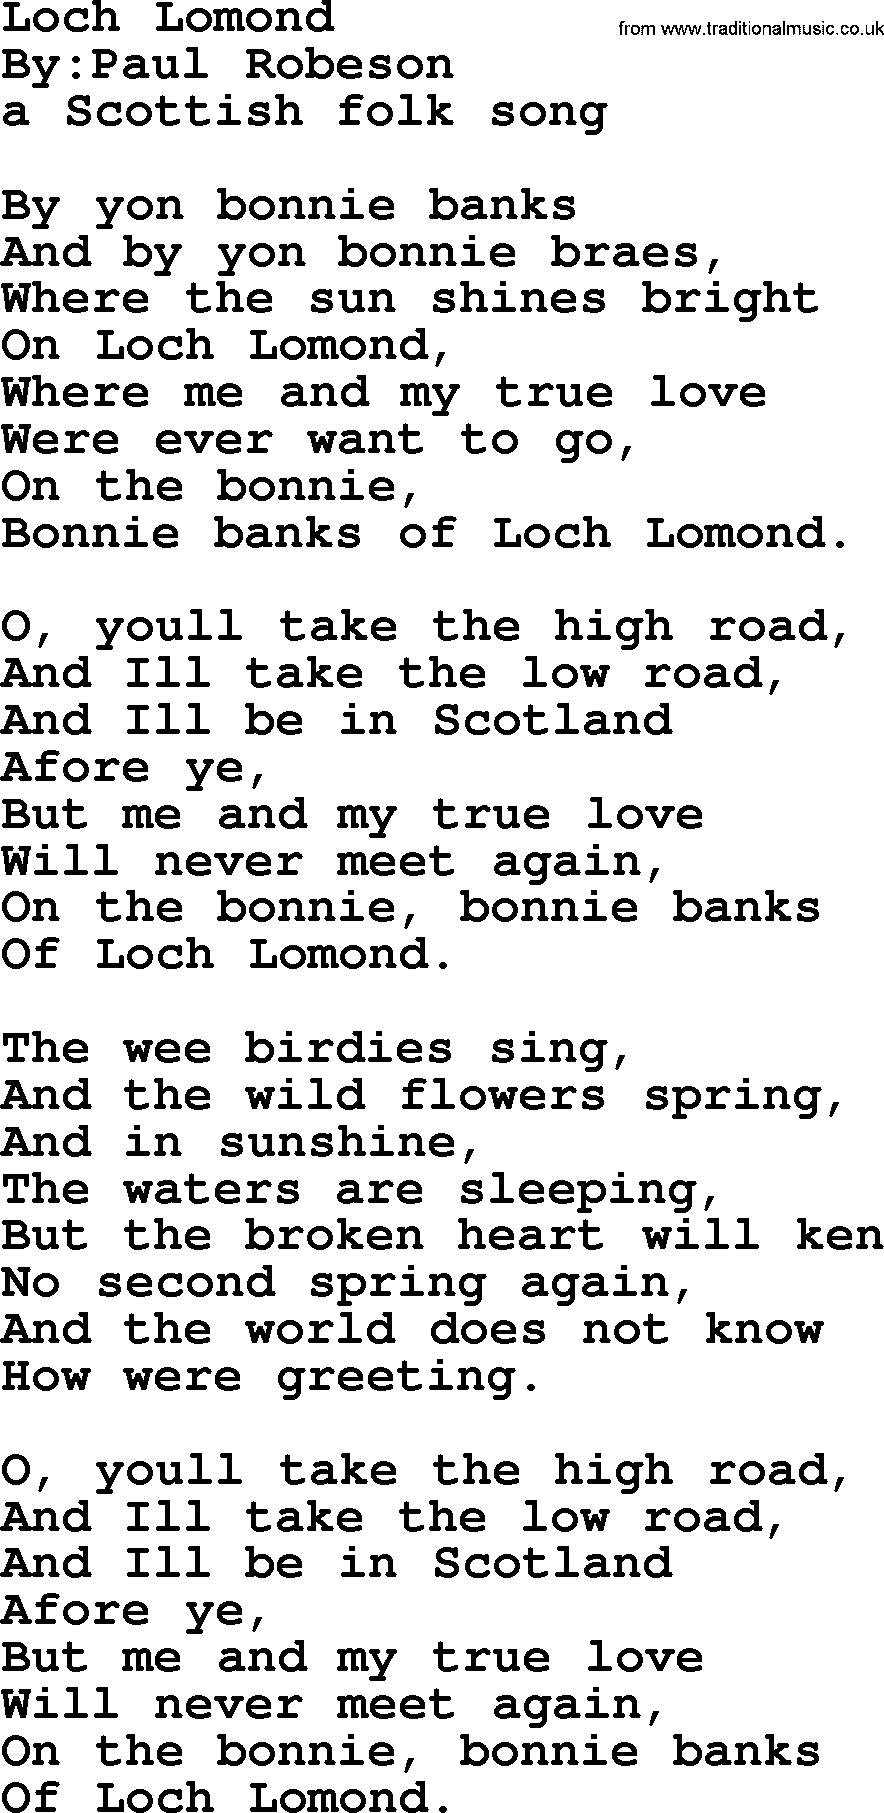 Loch Lomond Political Solidarity Workers Or Union Song Lyrics